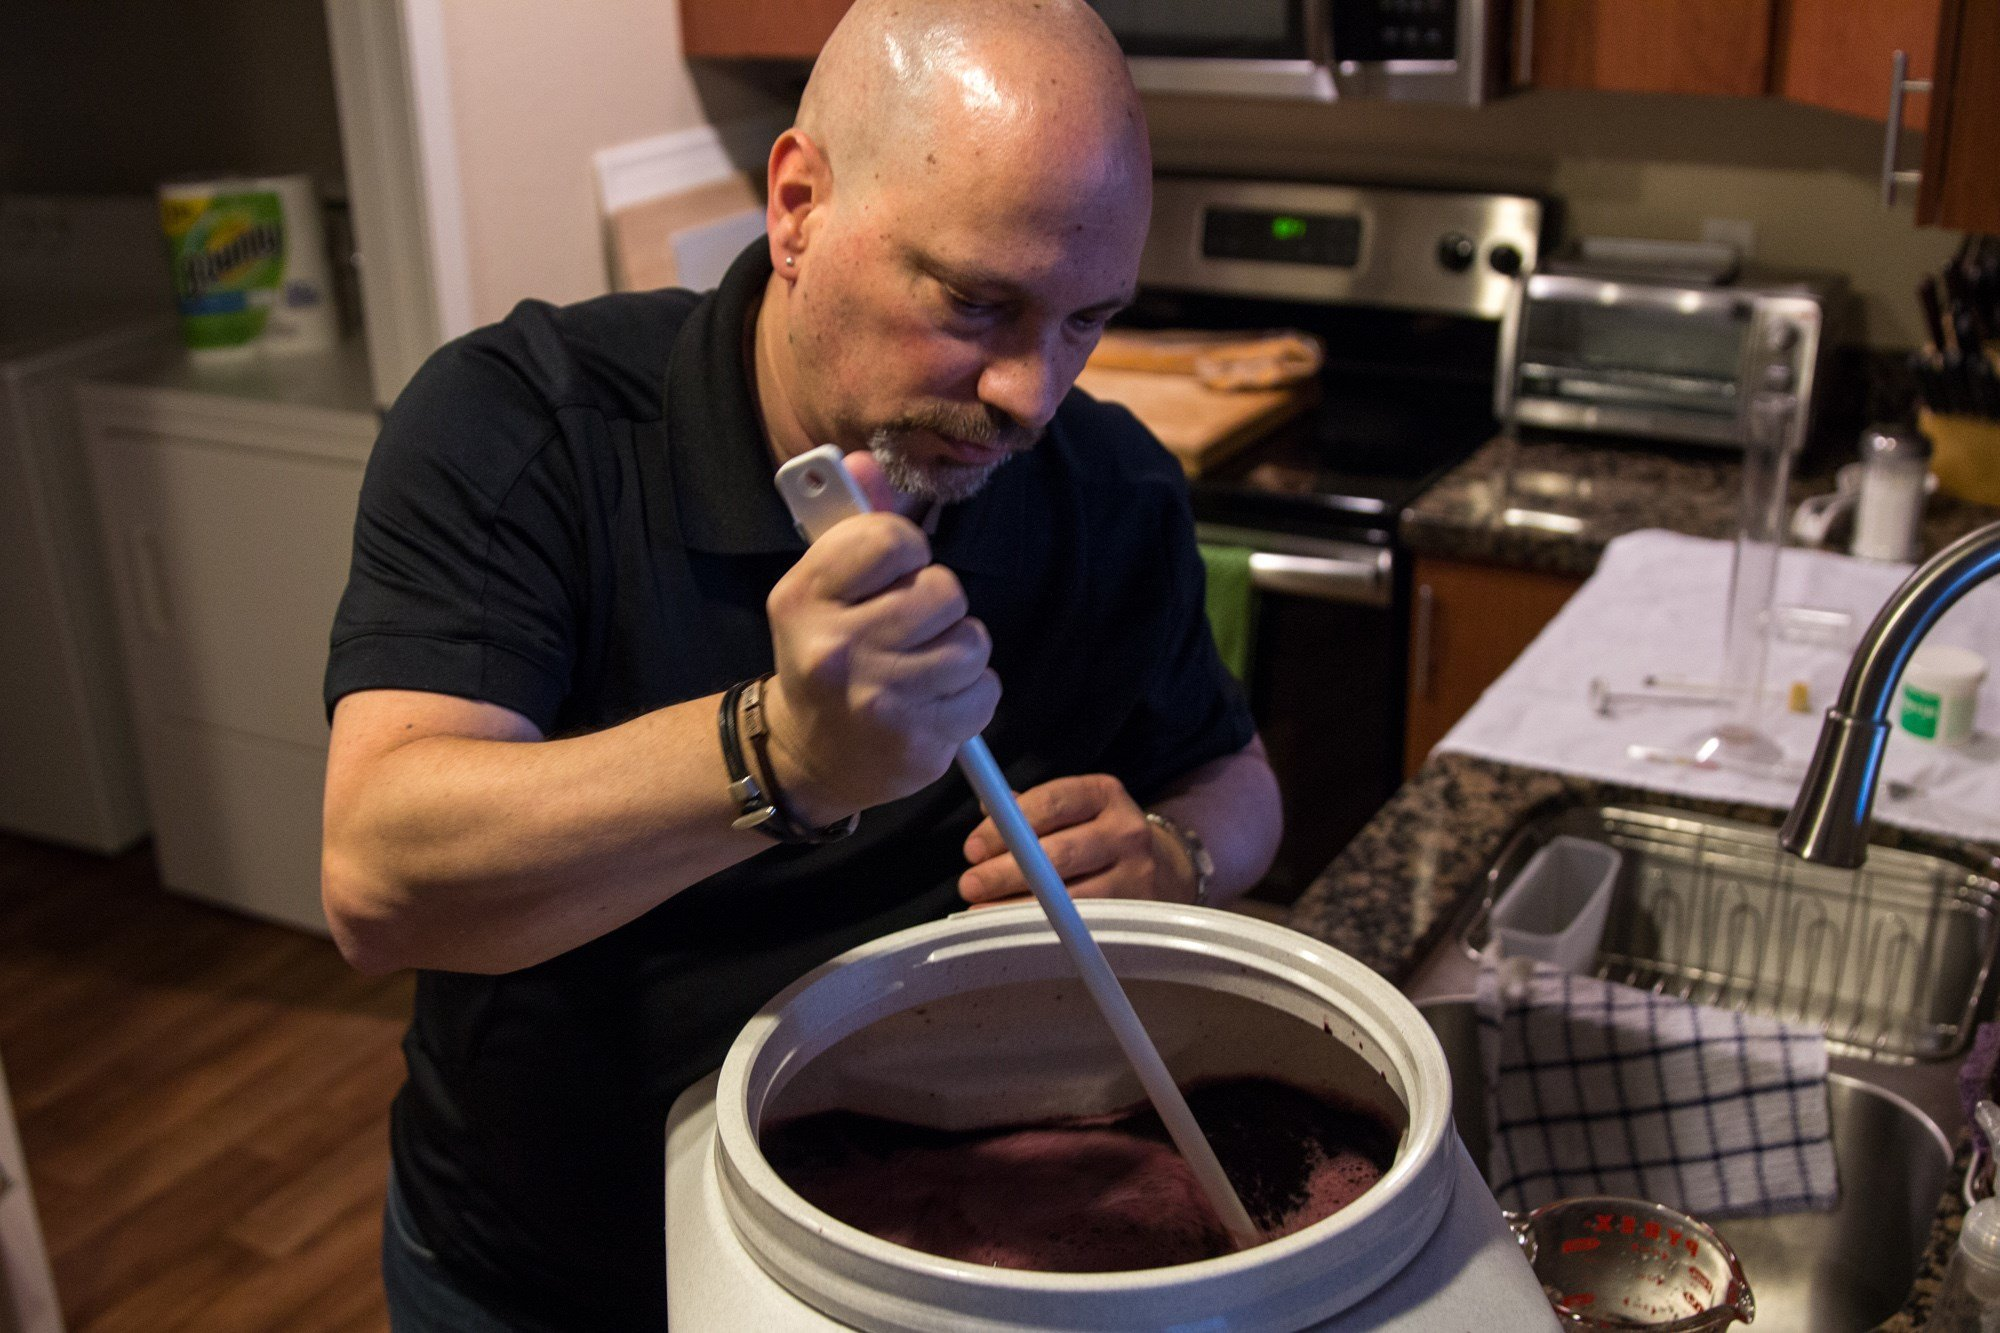 Louis Marconi, a member of AZ Winemakers, a association of home wine makers, works on a batch at his Chandler home. After the wine is fermented, Marconi filters powders and removes impurities. (Source: Jenna Miller/ Cronkite News)